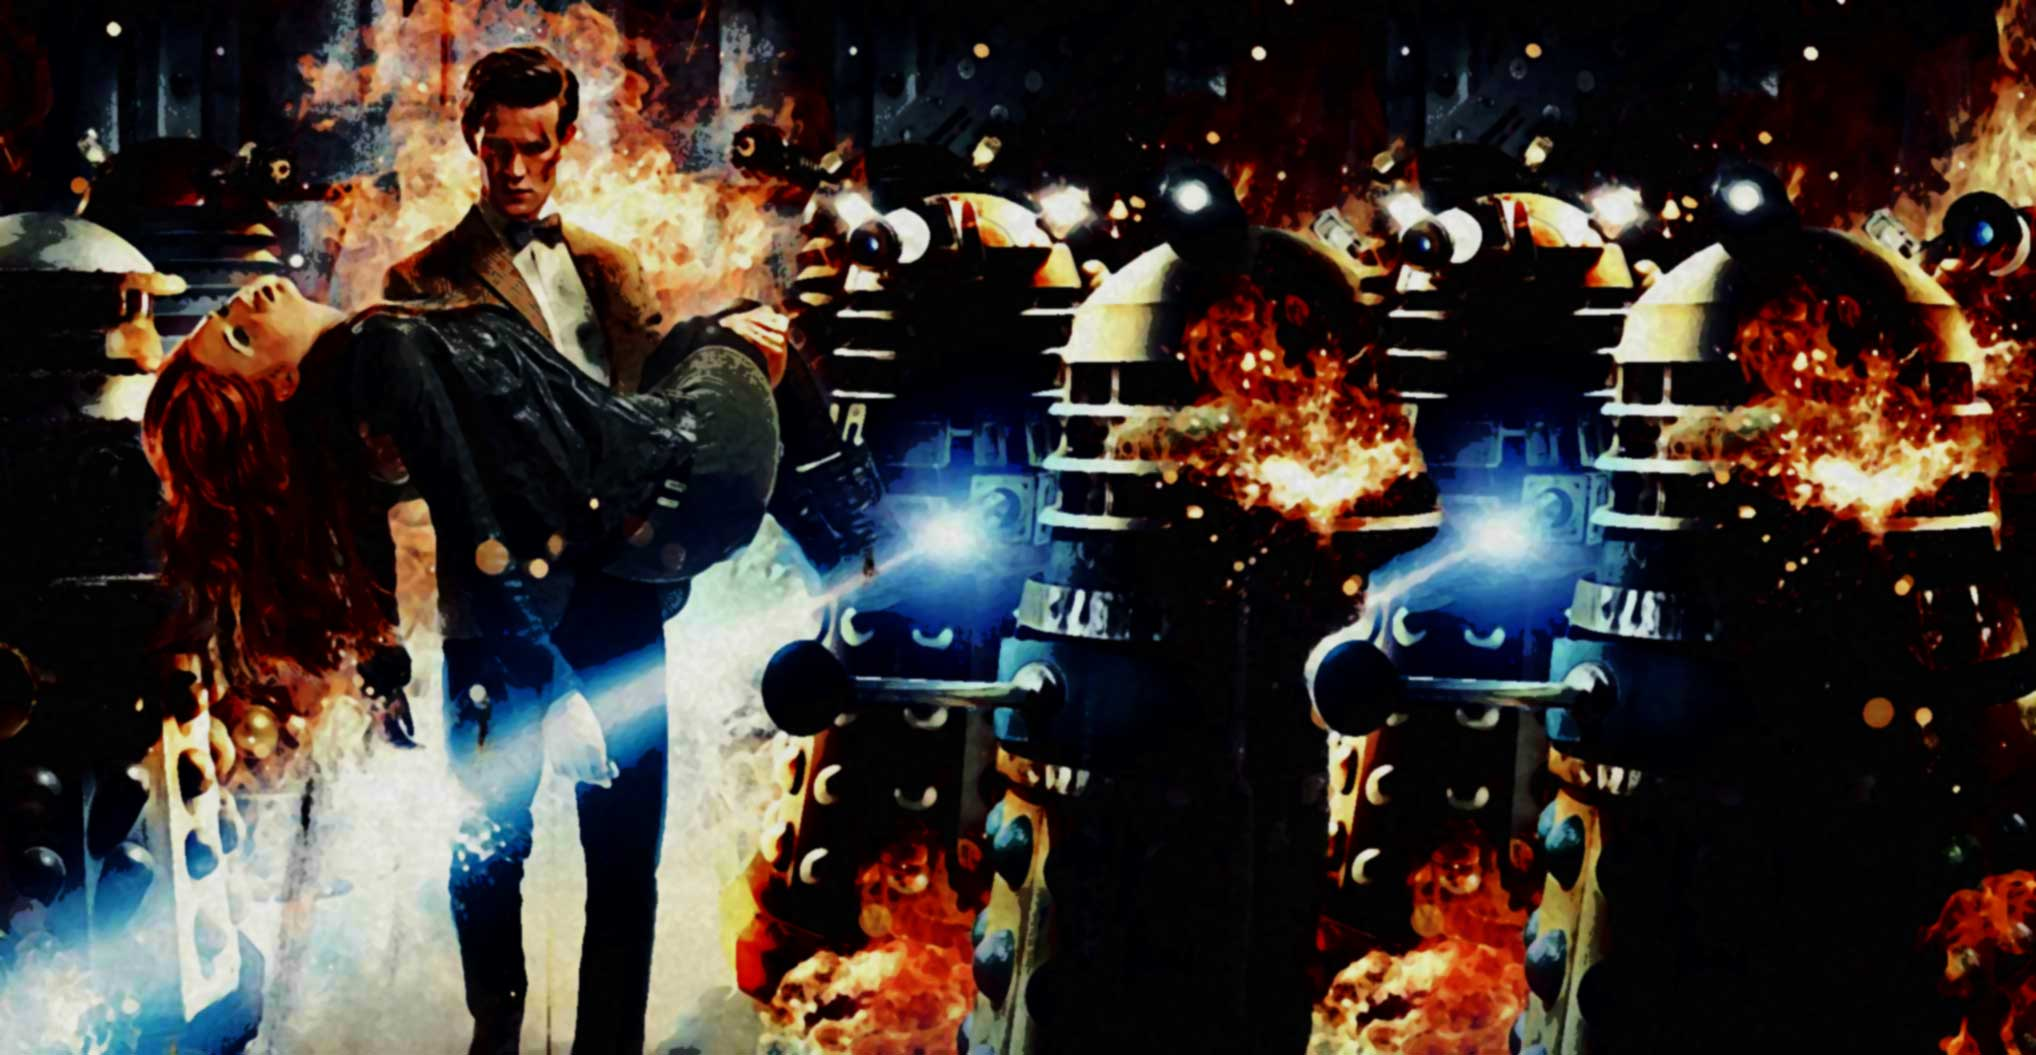 Doctor-Who-Season-7-background1.jpg